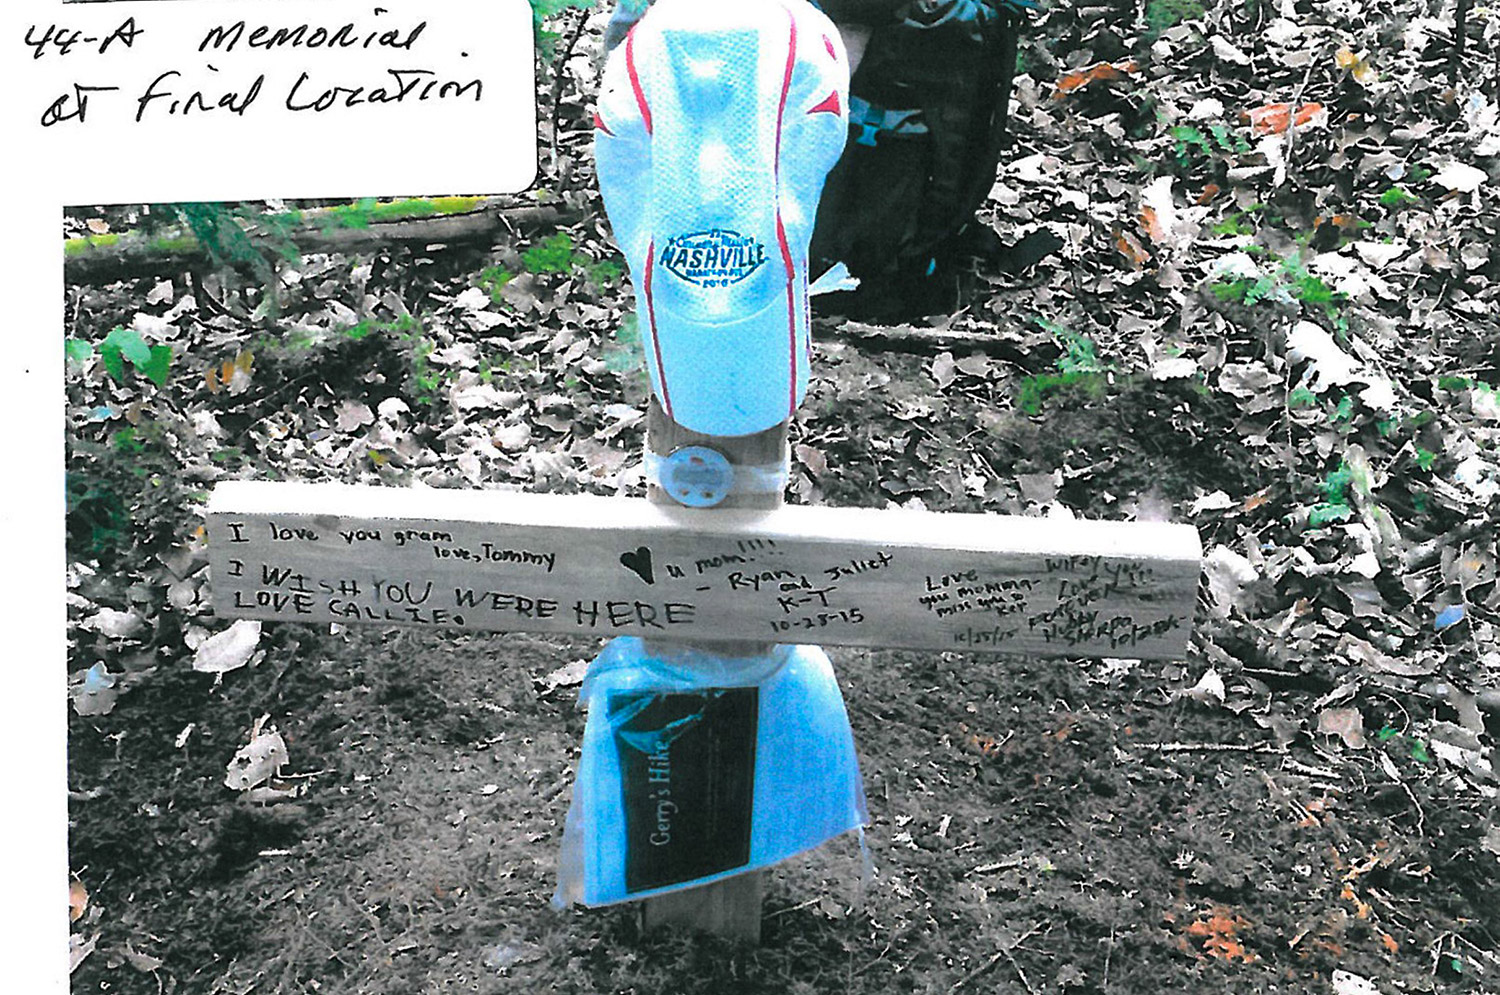 A memorial for Geraldine Largay was assembled at her final location, in the rugged woods of Franklin County.